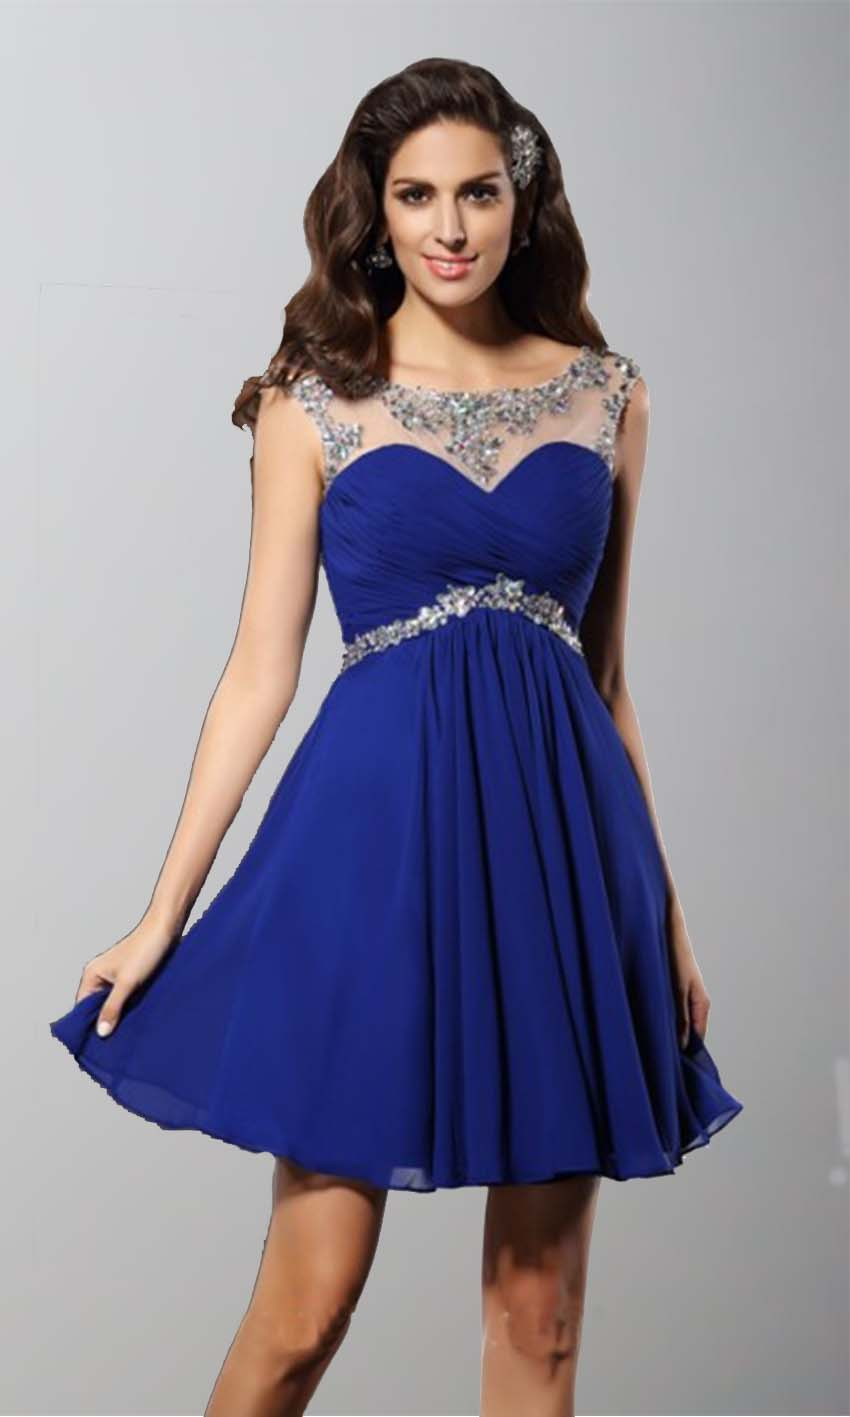 Blue illusion short lace prom dresses uk ksp347 ksp347 8700 blue illusion short lace prom dresses uk ksp347 ksp347 8700 cheap prom dresses uk bridesmaid dresses 2014 prom evening dresses look for cheap ombrellifo Image collections